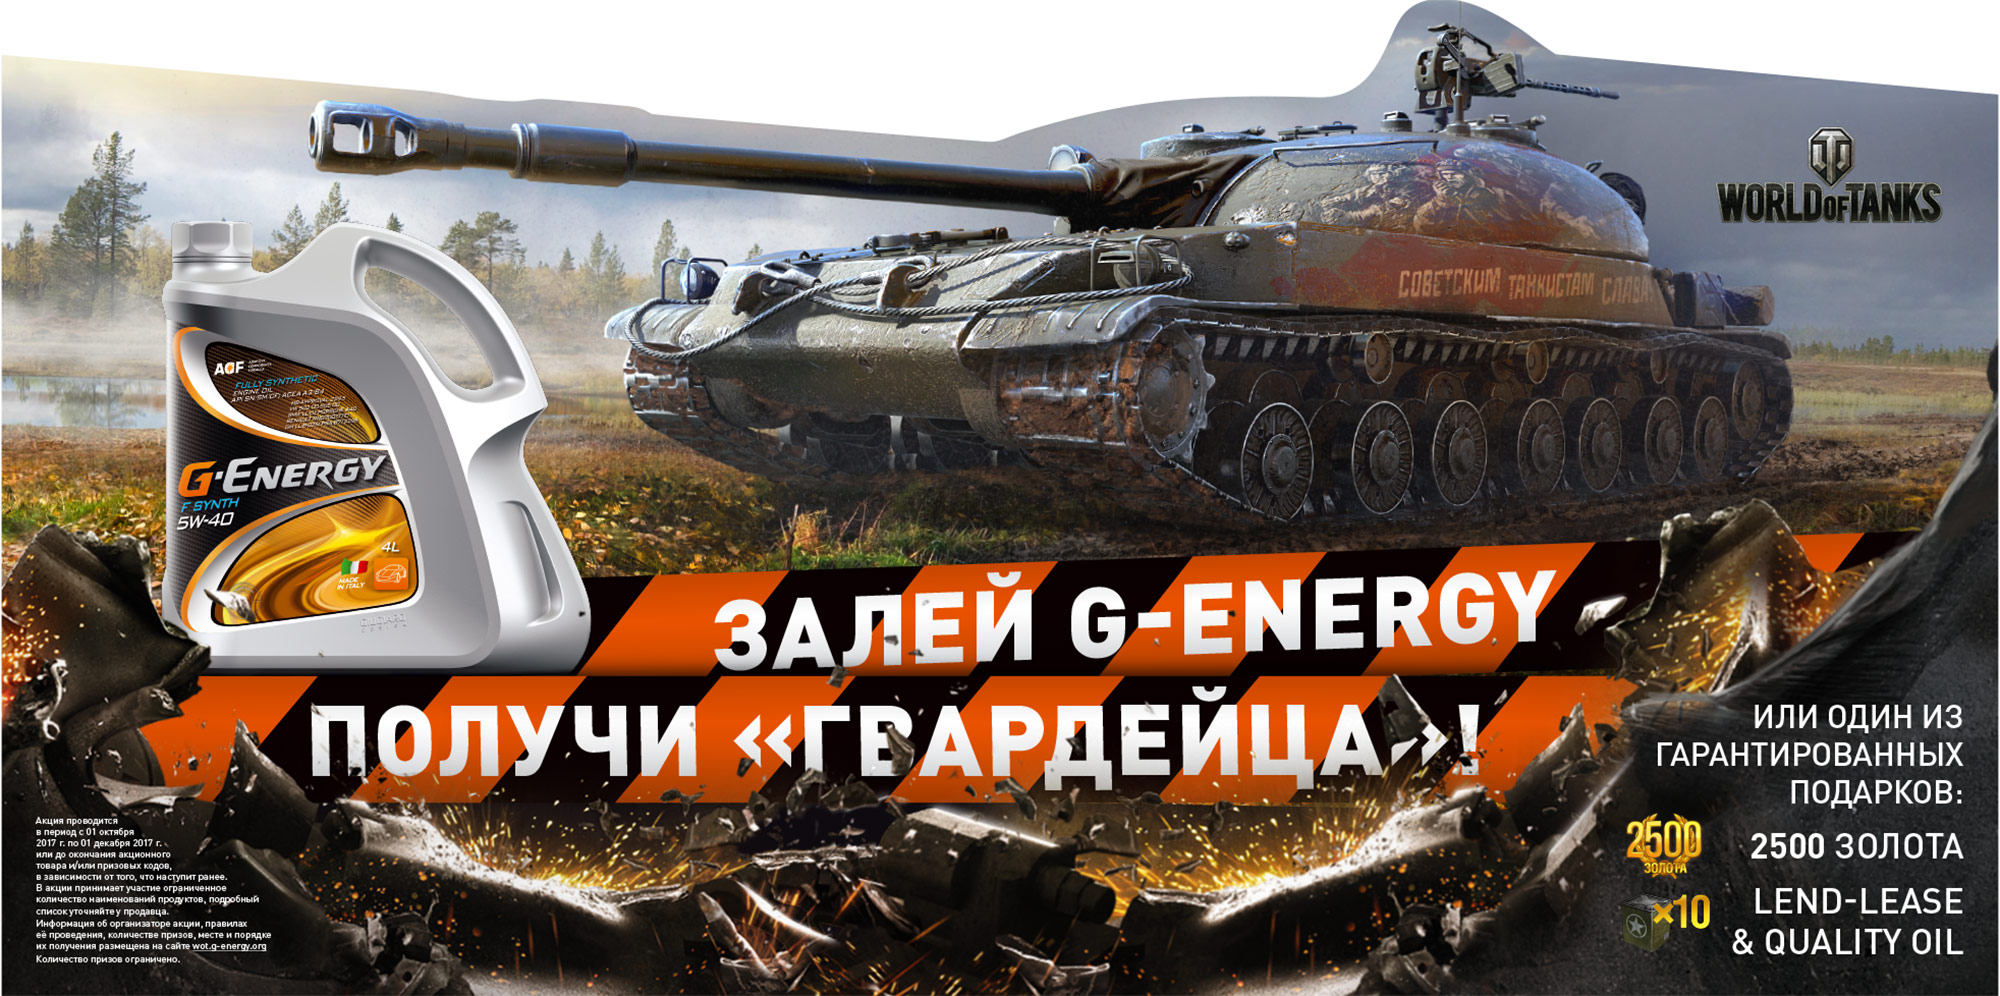 World of Tanks и G-Energy